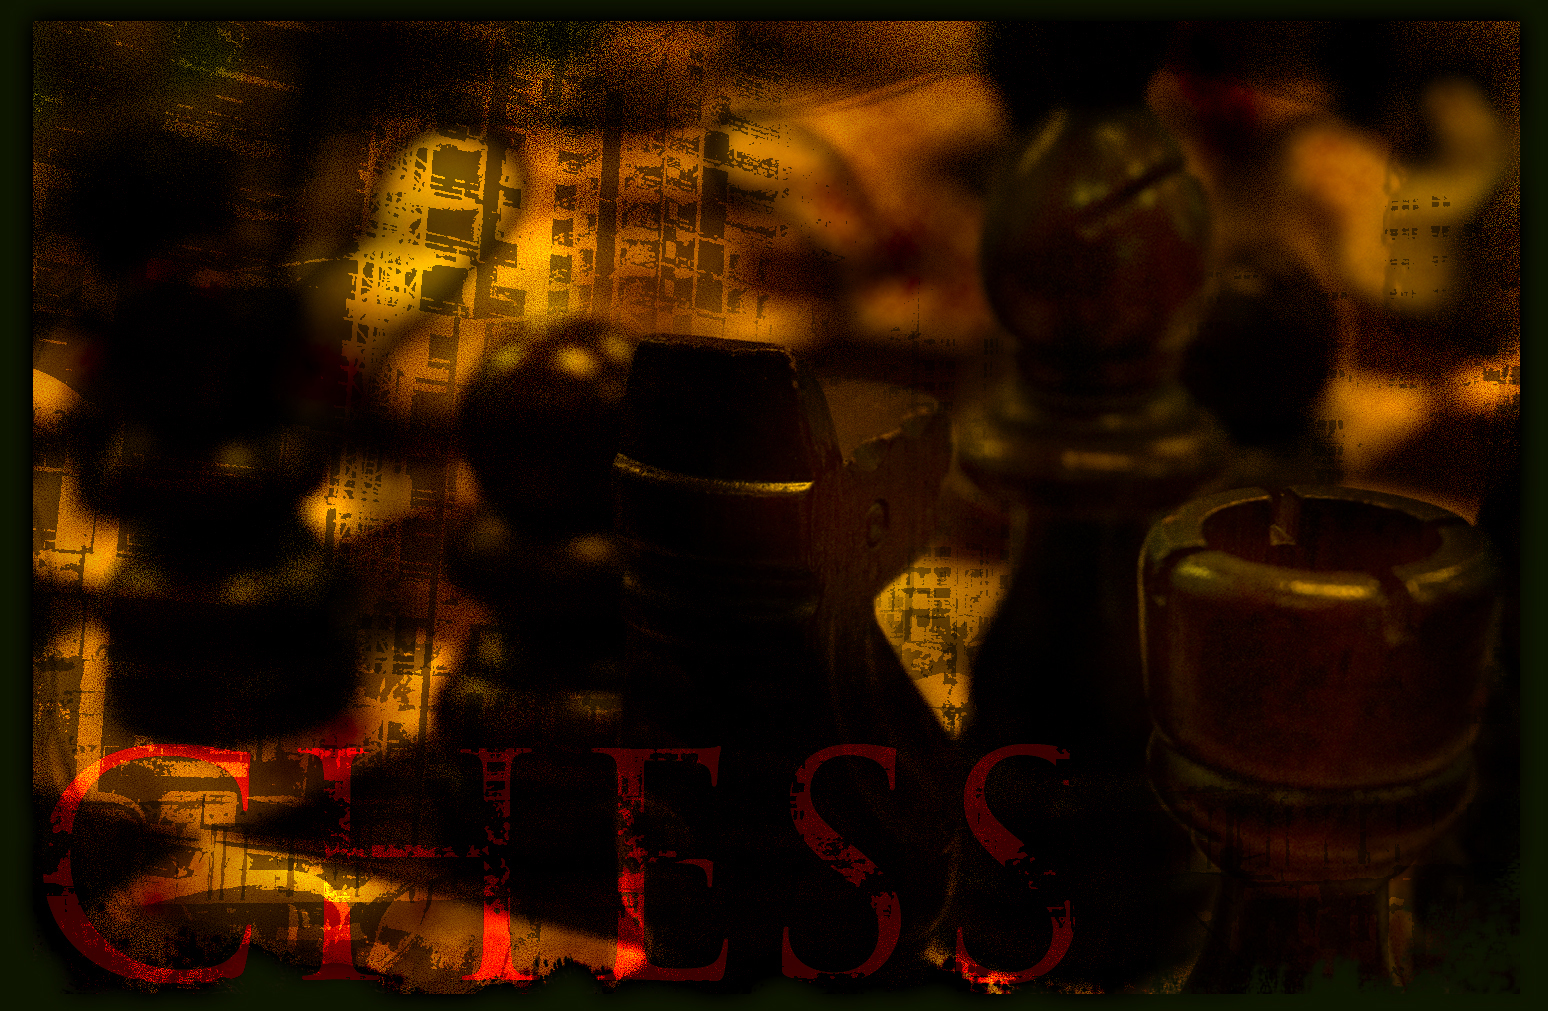 chess grunge brownage reporting HD Wallpaper